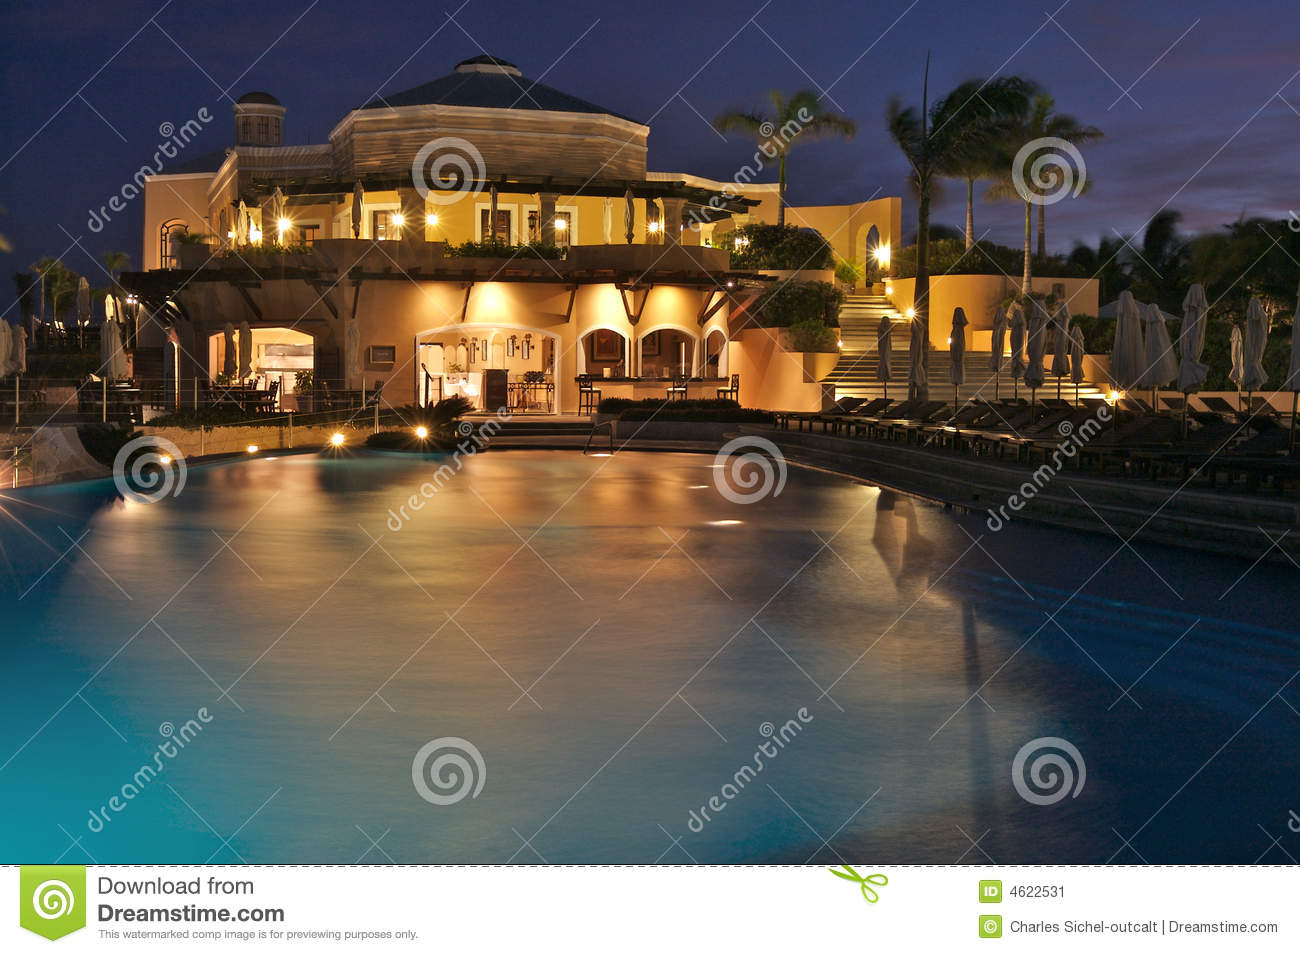 luxury-resort-night-4622531.jpg